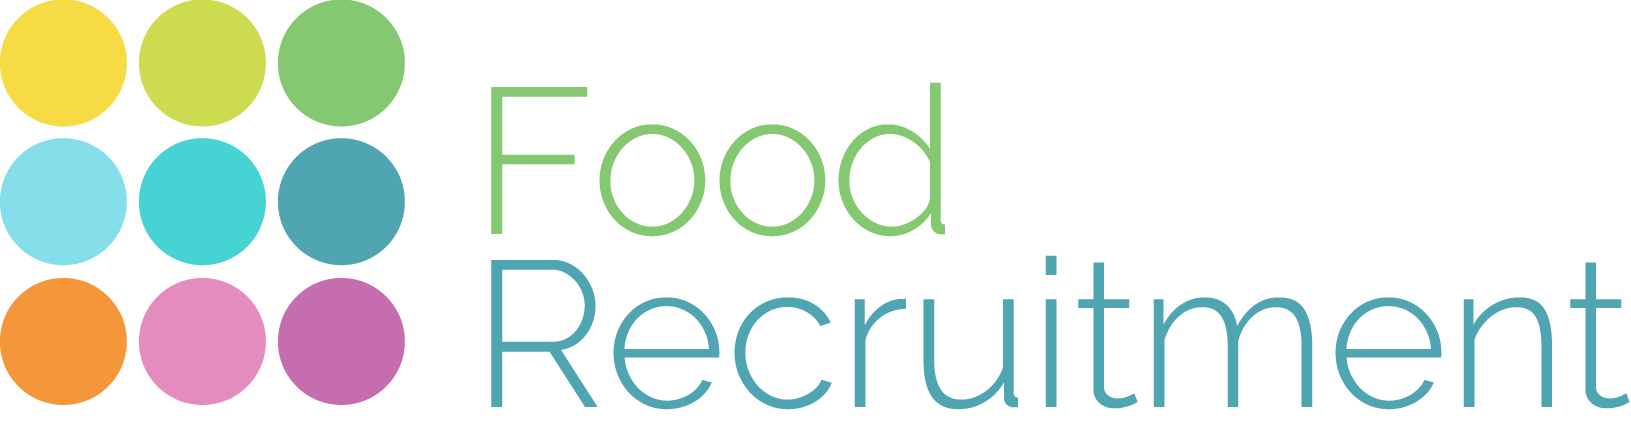 Food Recruitment